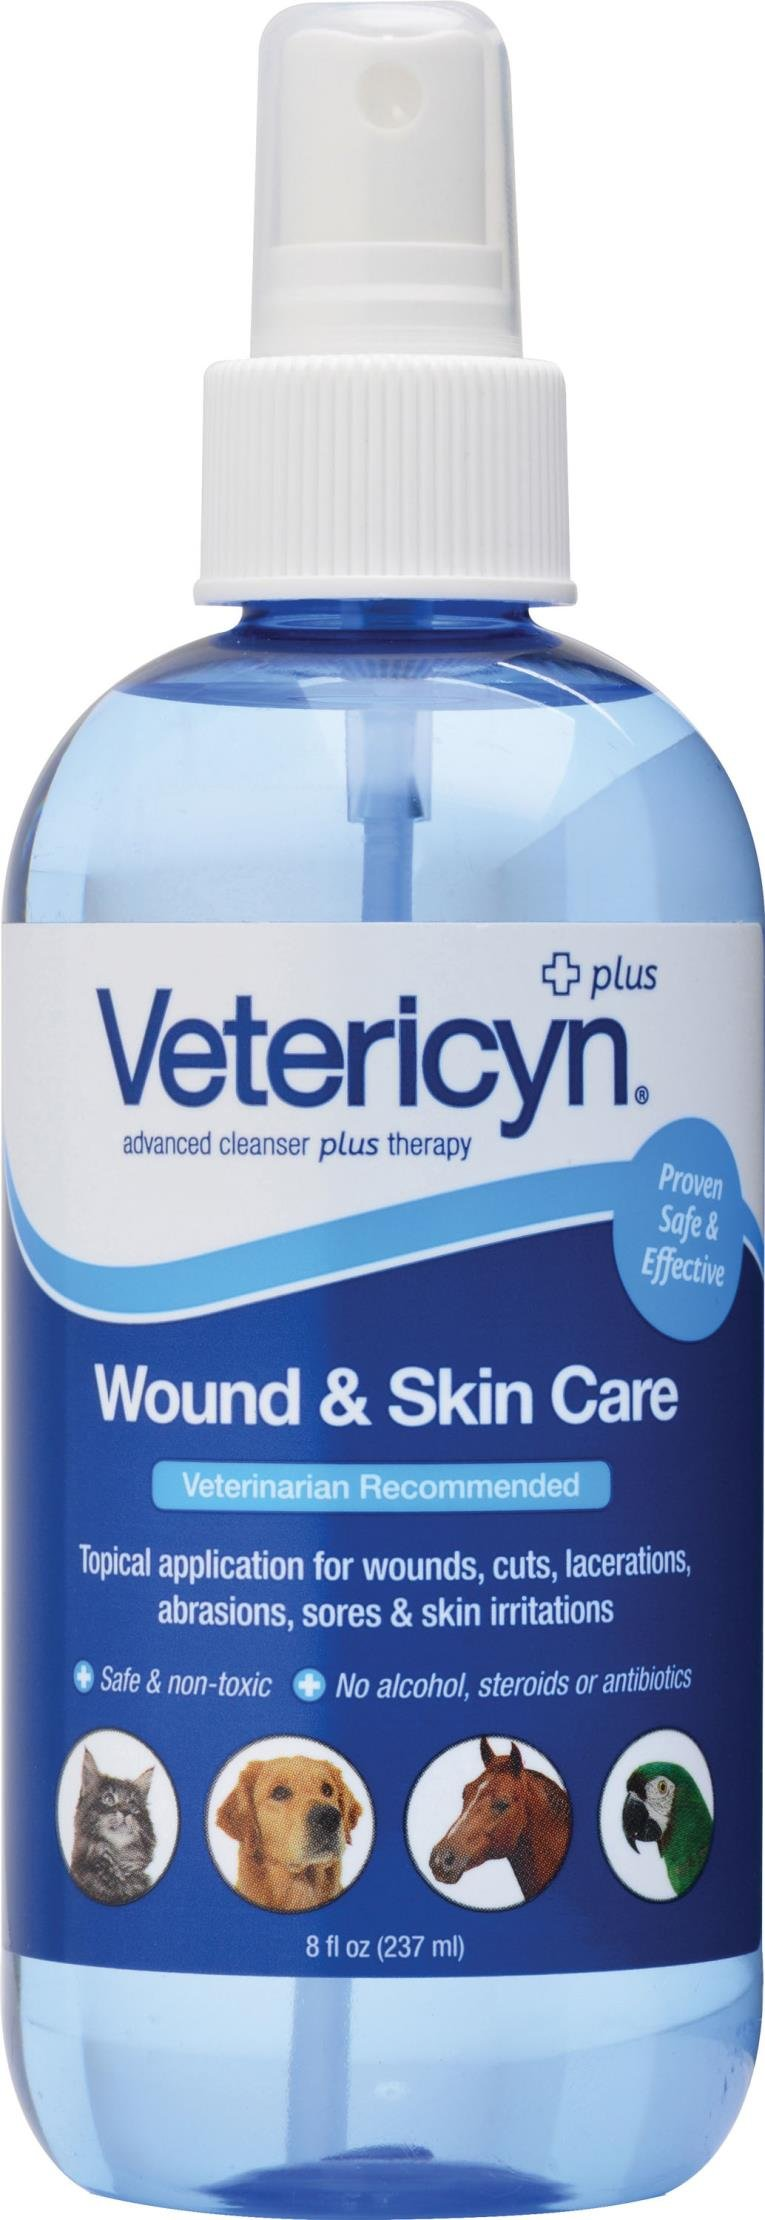 VETERICYN ALL ANIMAL WOUND & SKIN CARE - 8 OUNCE PUMP